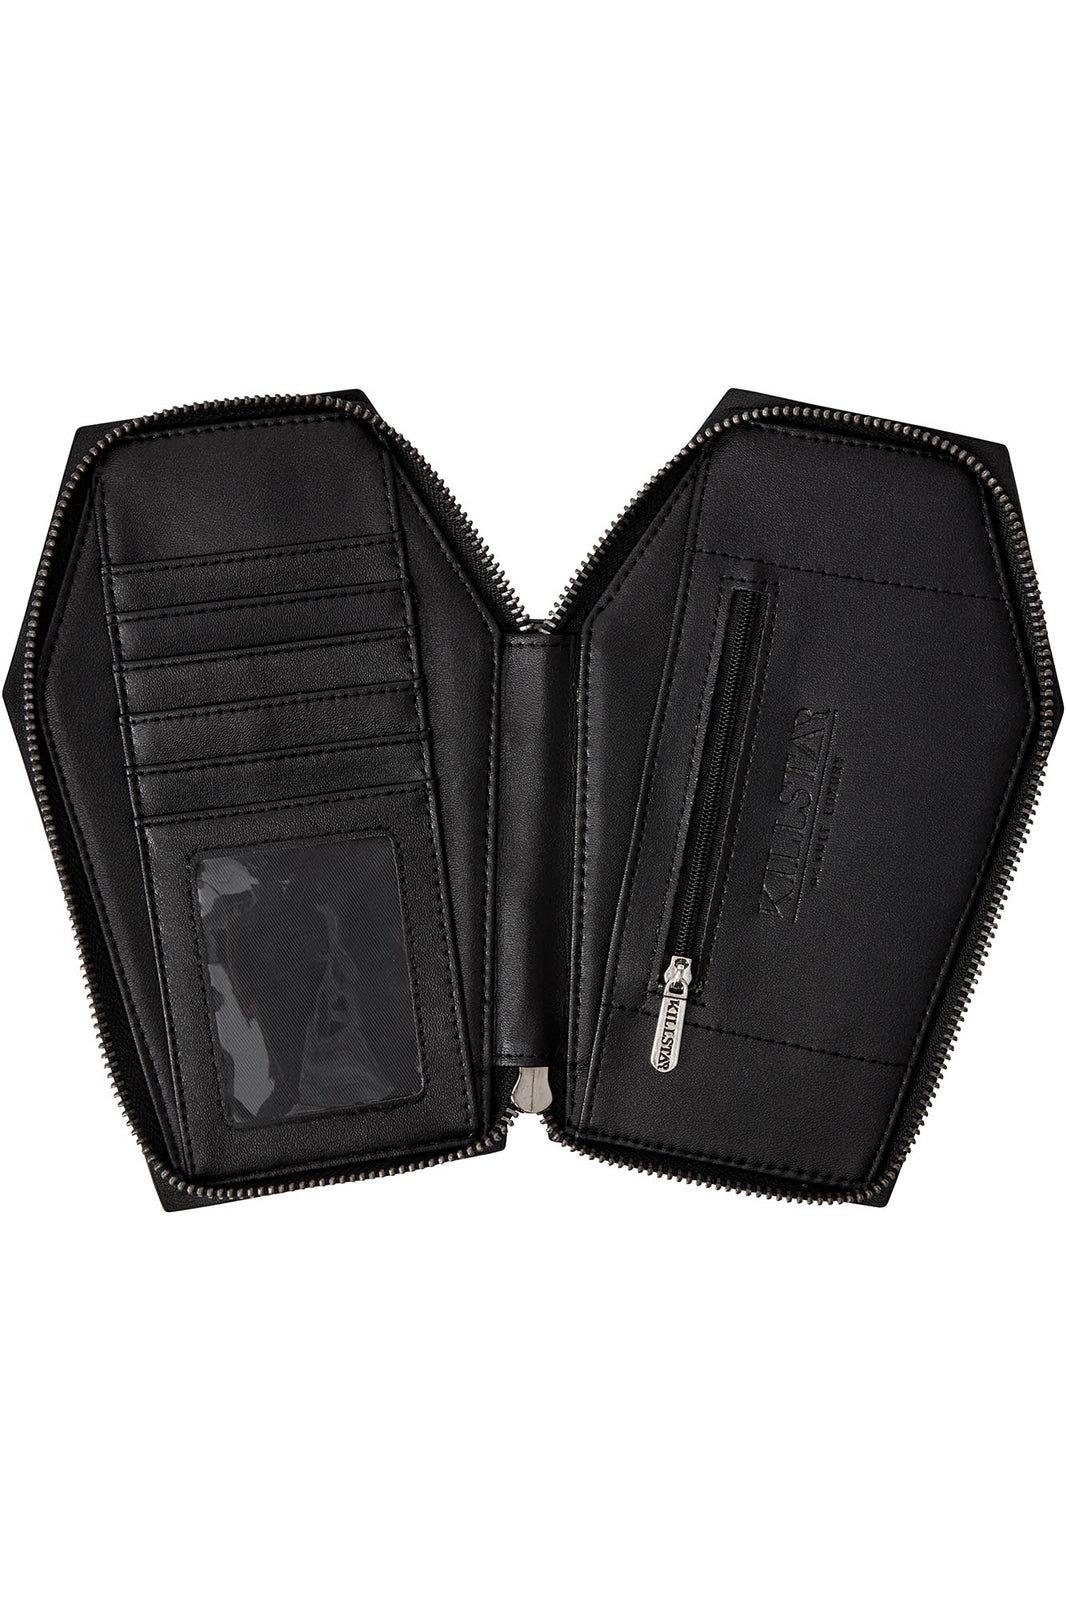 Burial Rites Wallet